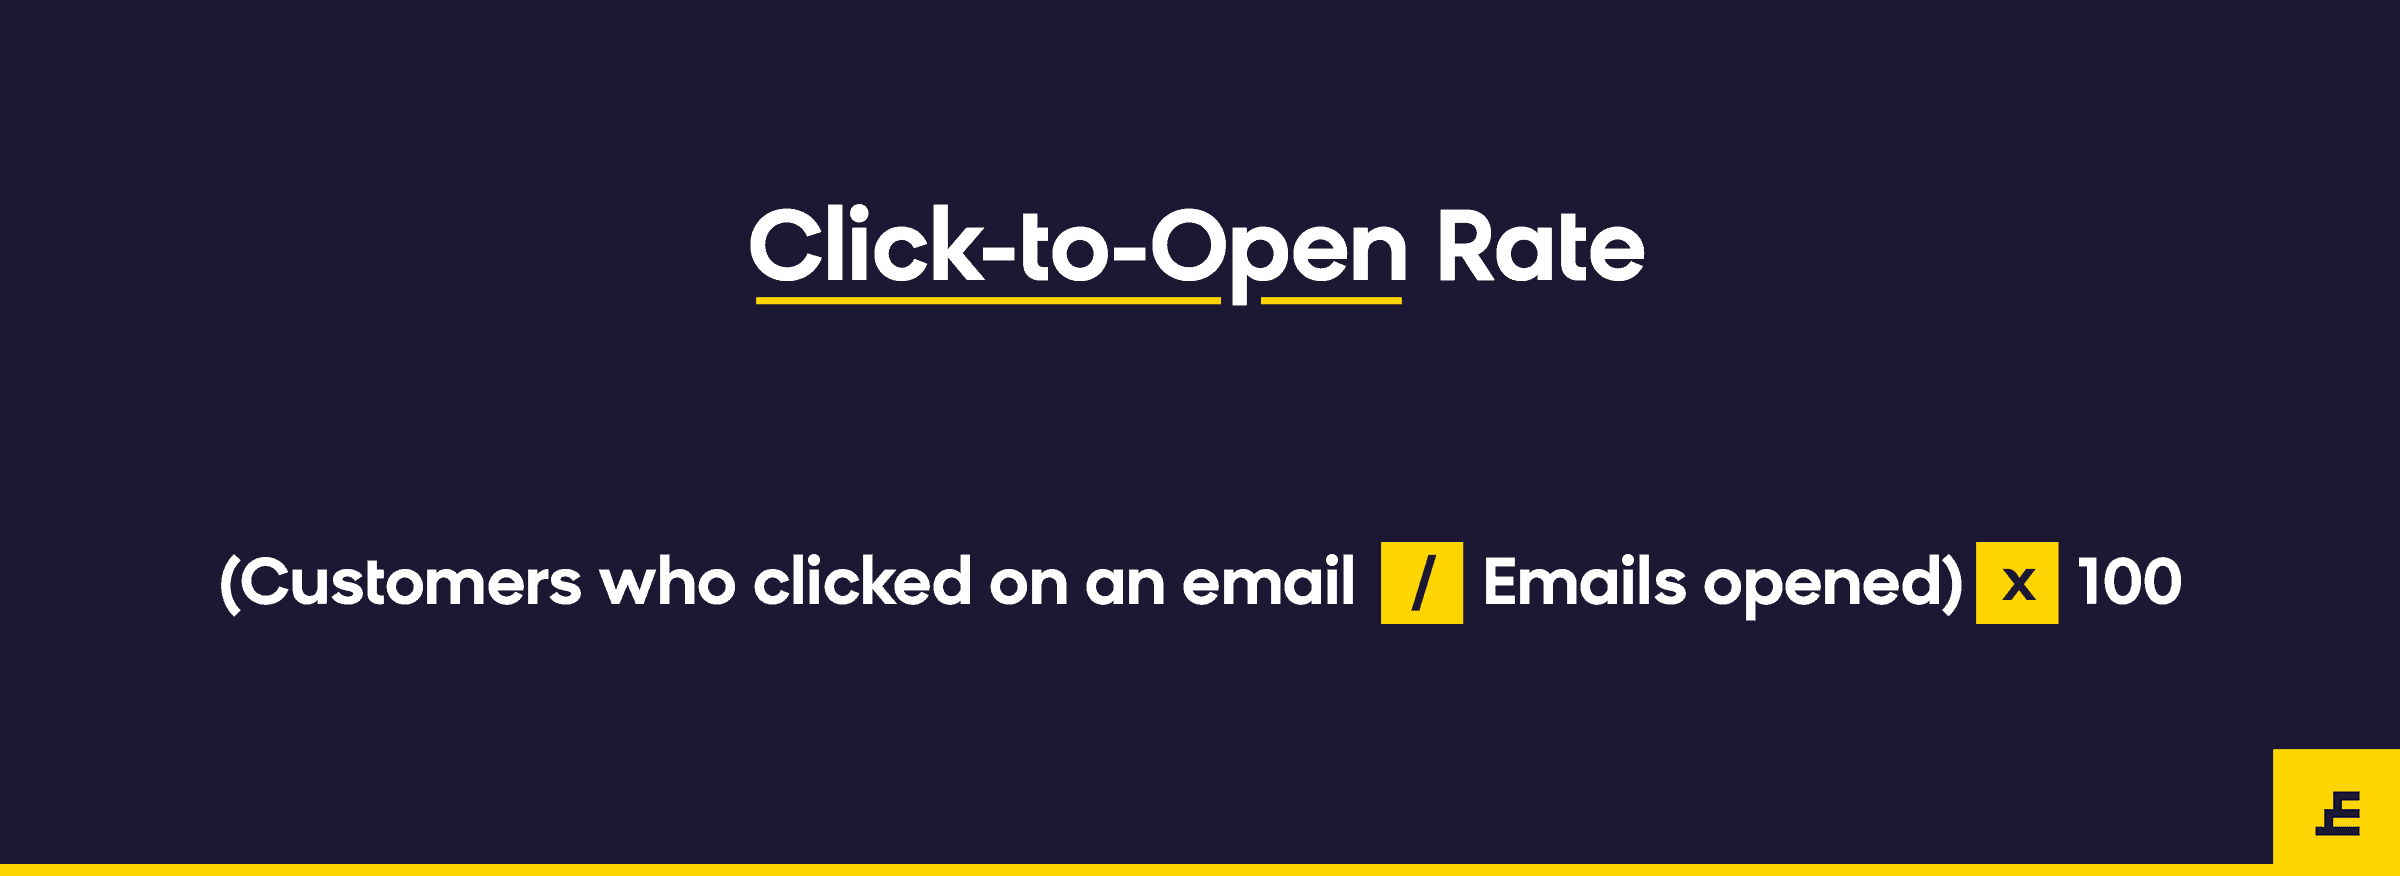 email marketing metric - click to open rate